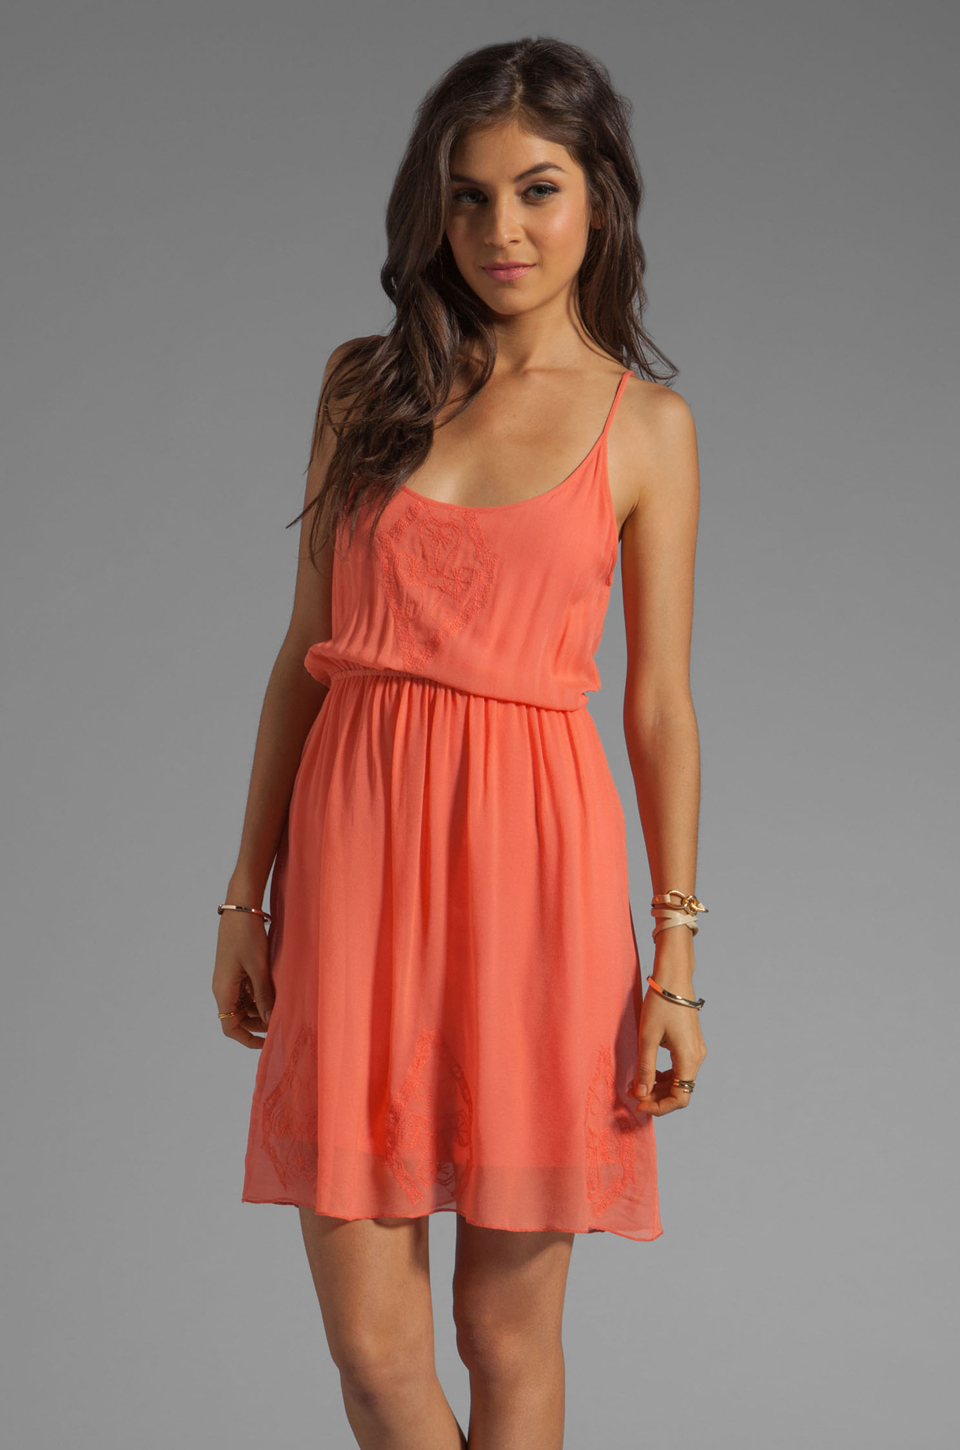 Sanctuary Sand Beneath Your Toes Dress in Tequila Sunrise